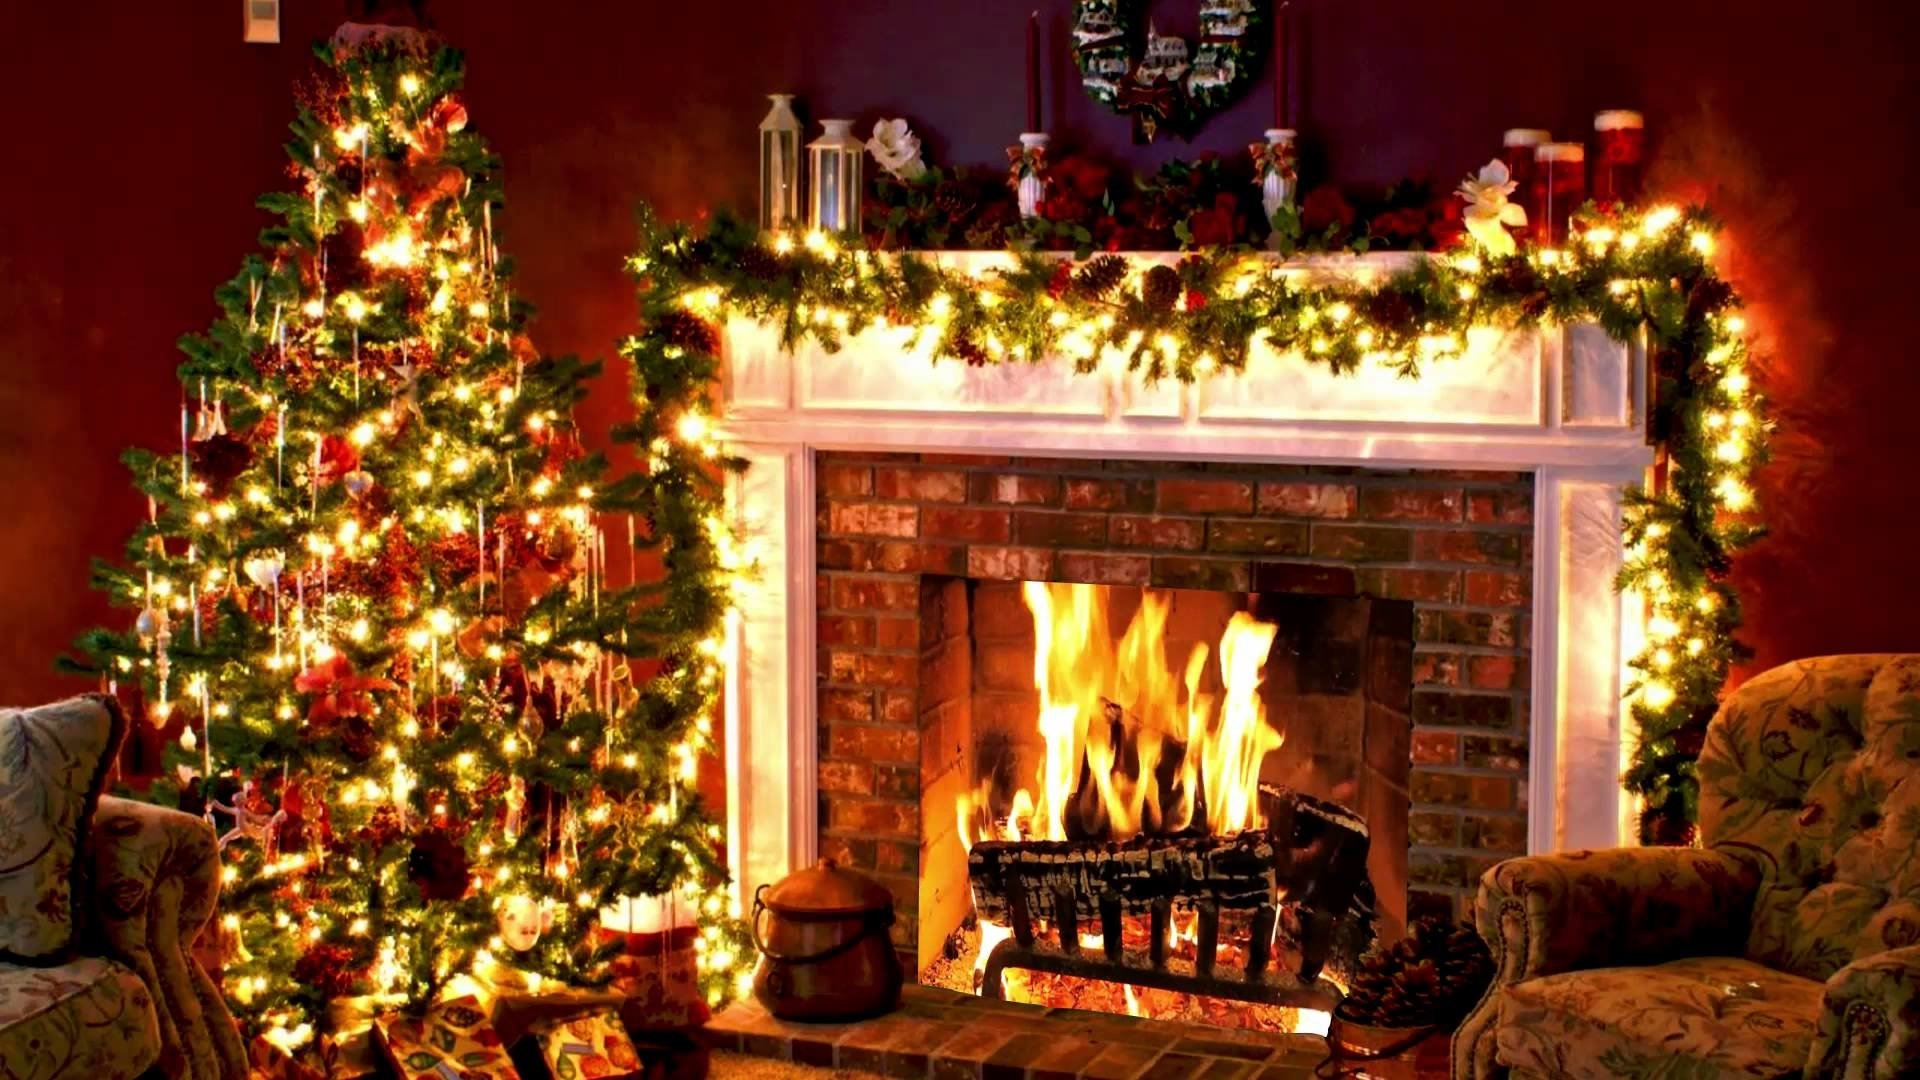 Home for Christmas HD Wallpaper   Background Image ...